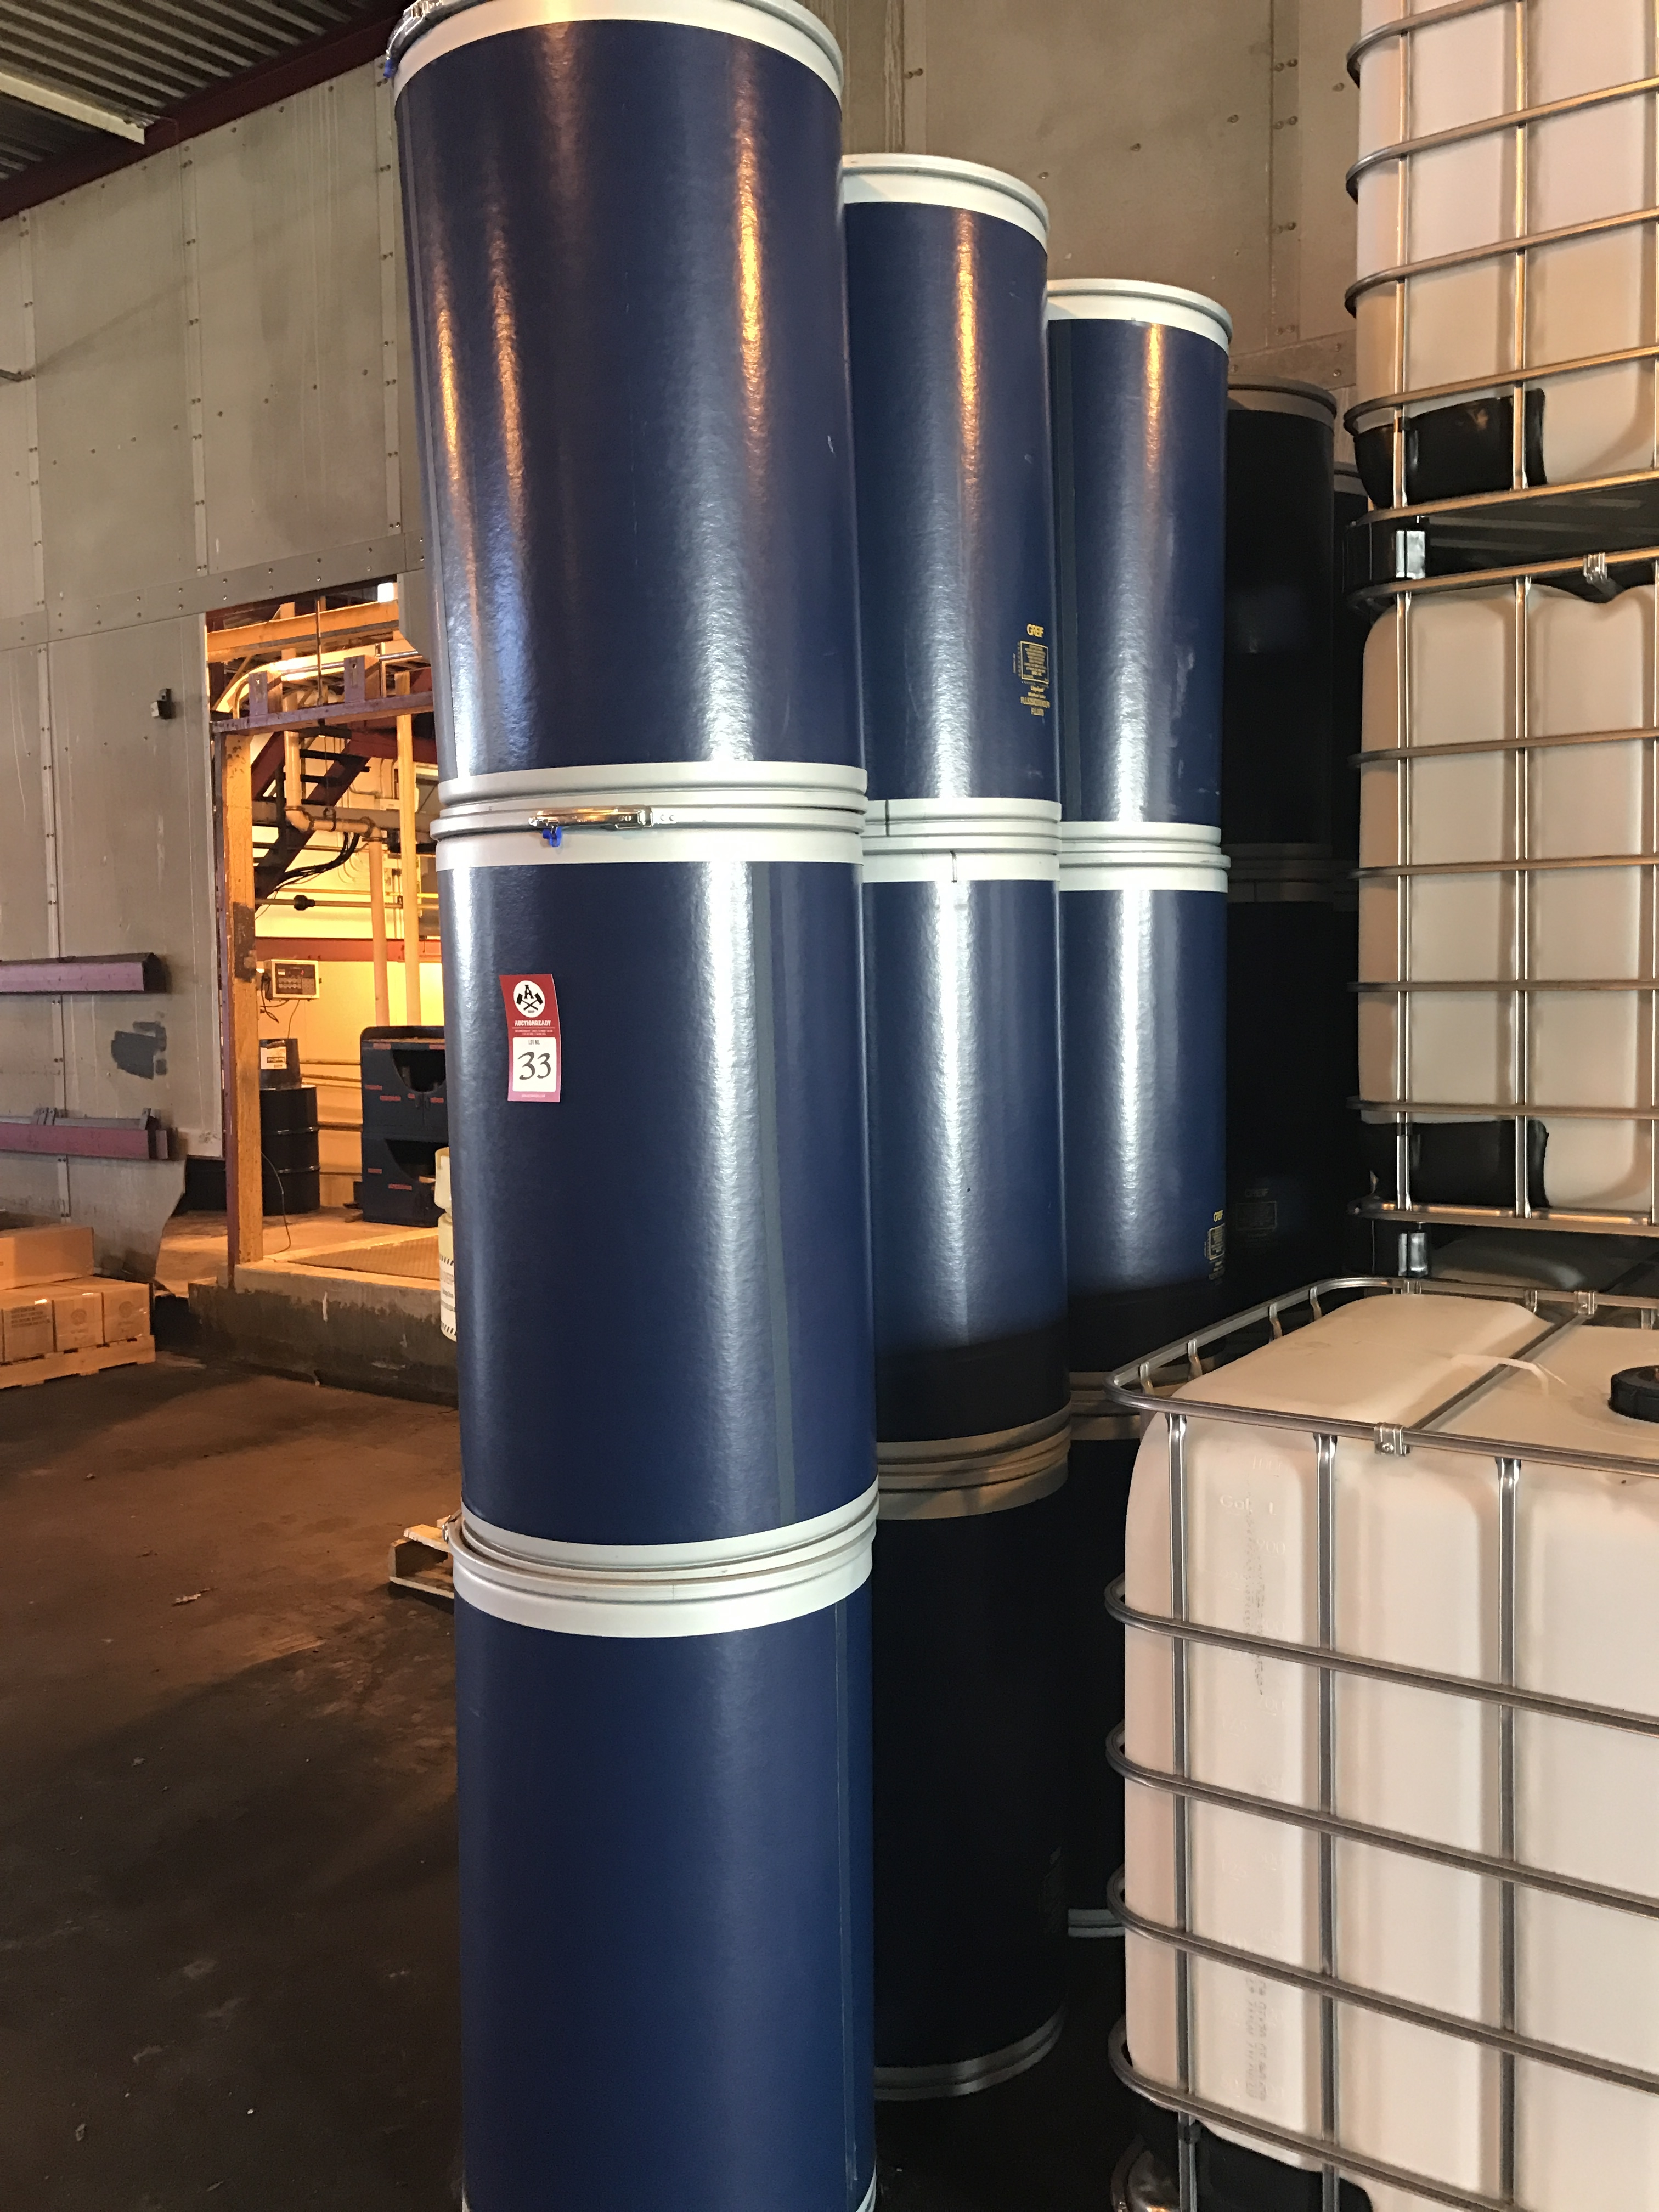 Lot 33 - Lot of 24 Fiber Drums, Greif Liquids Type 24, 600 lbs. capacity, lot of twenty-four (24), Brand New